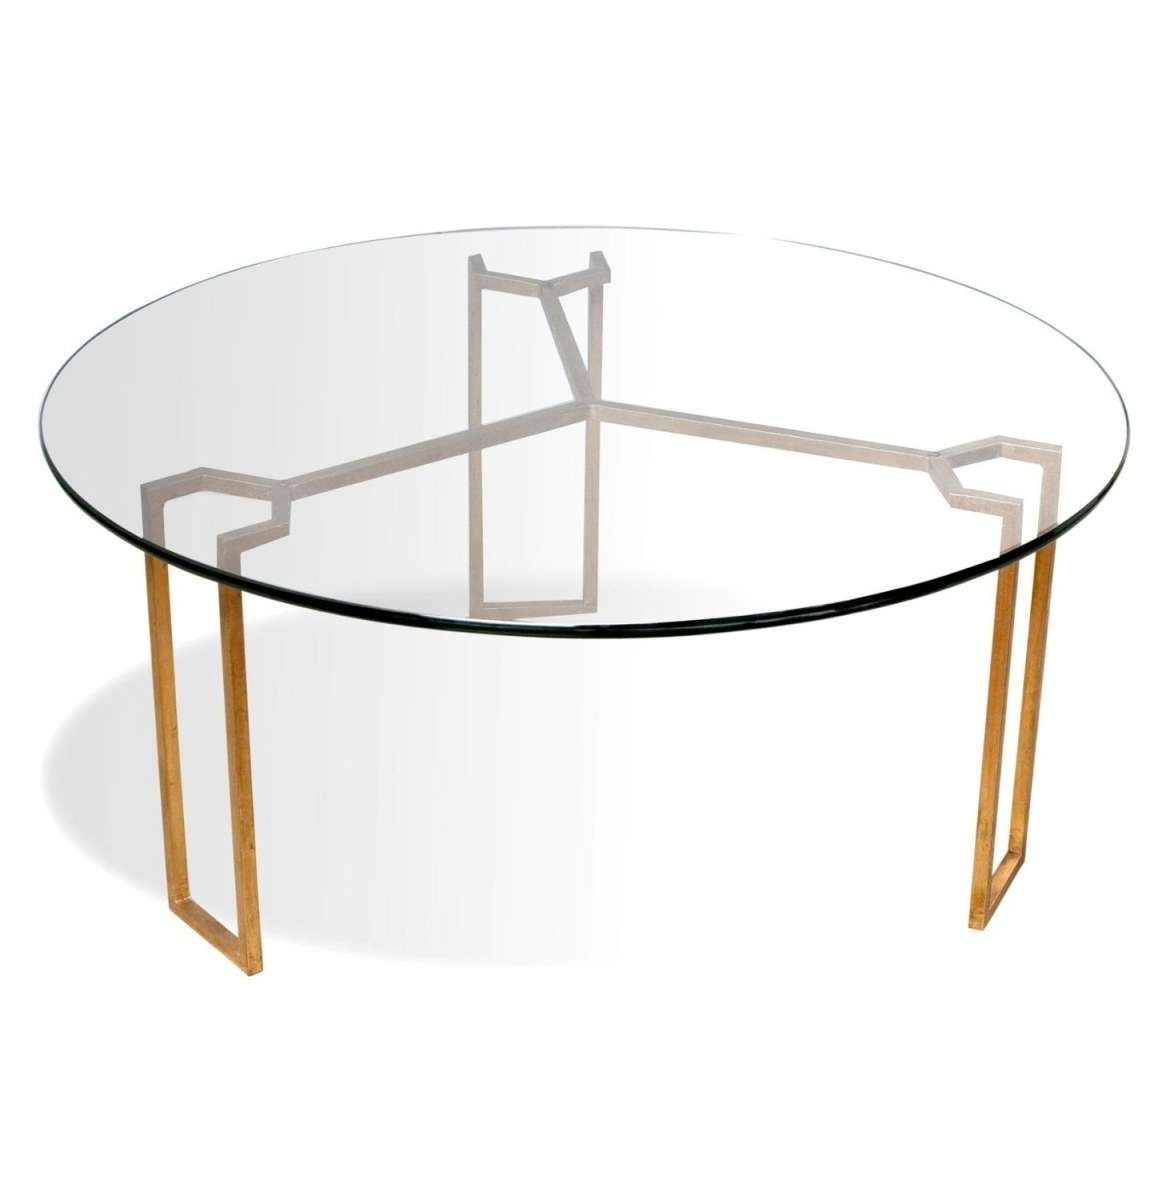 Glass Round Coffee Tables Small Round Glass Coffee Table Modern Regarding Latest Glass Circular Coffee Tables (Gallery 18 of 20)